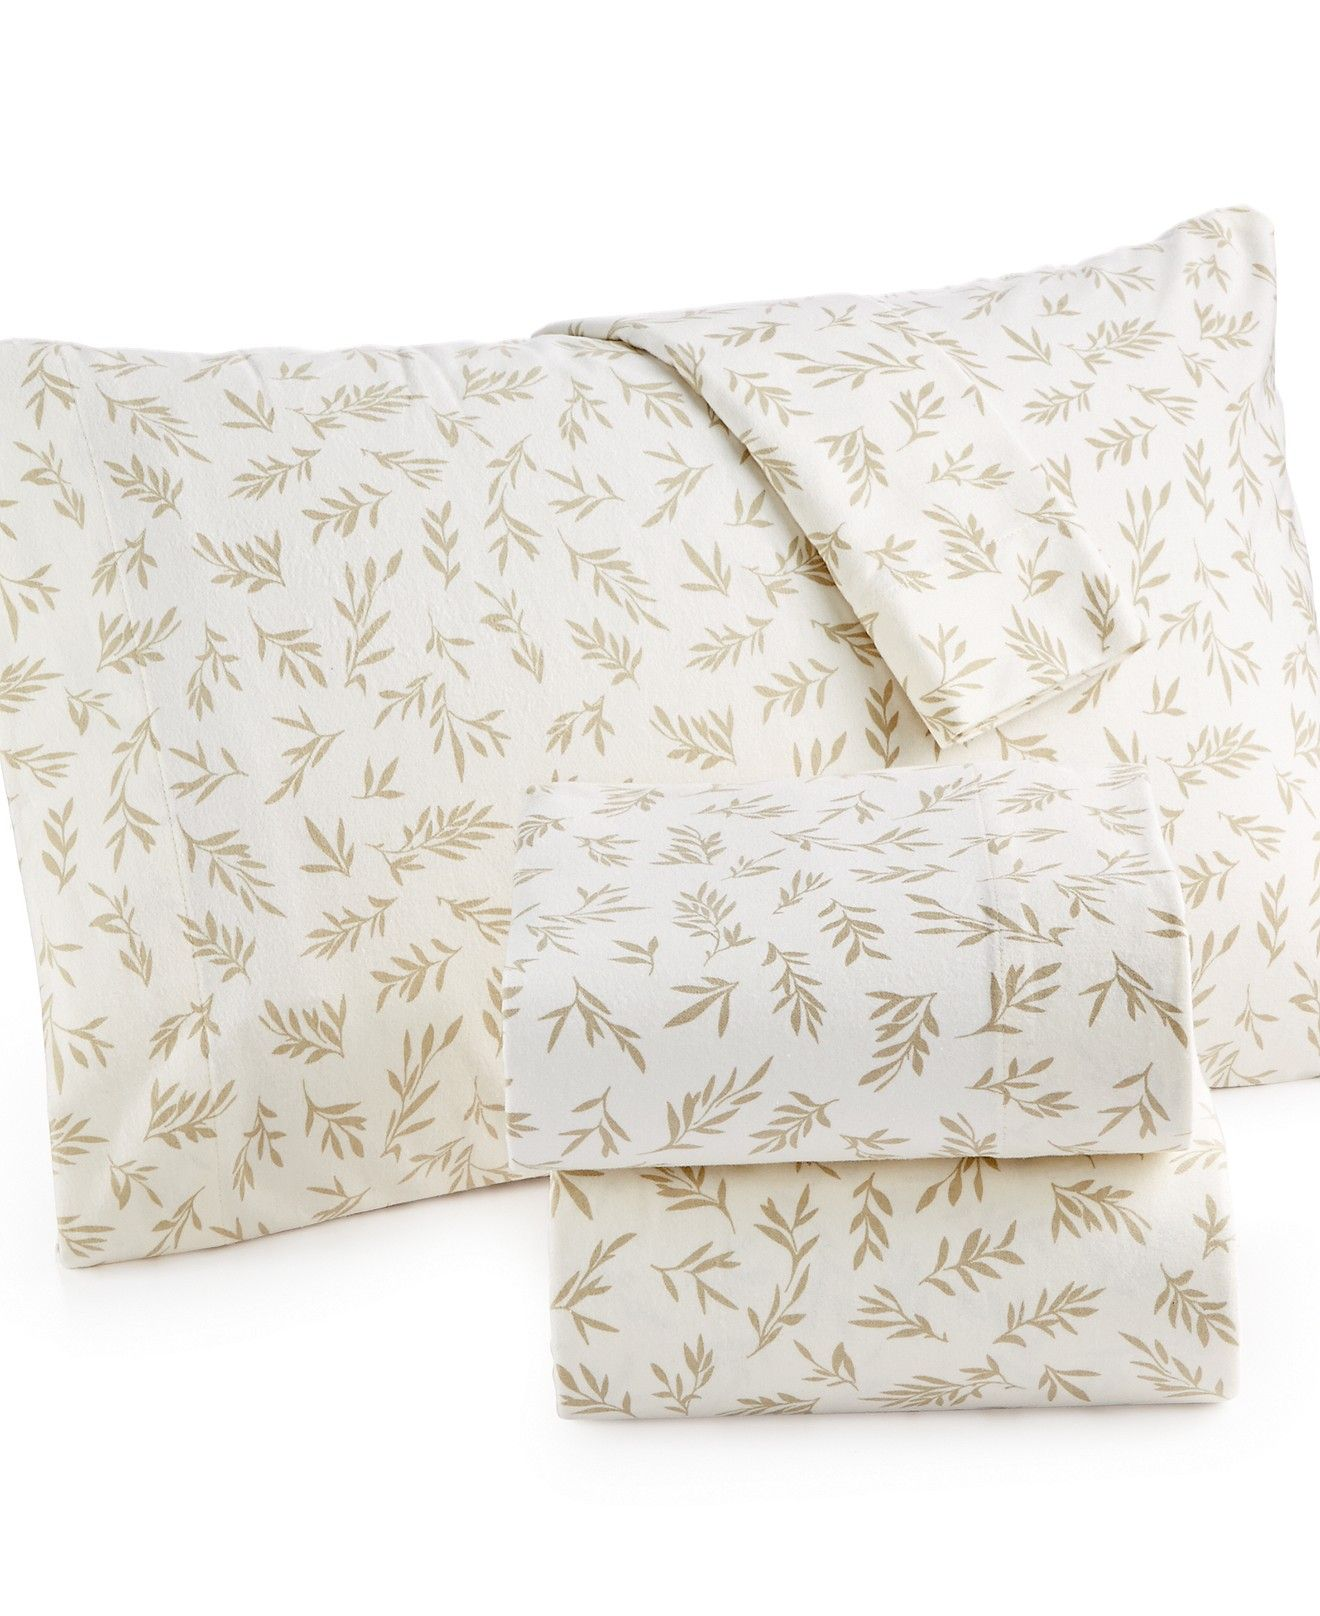 Closeout Martha Stewart Collection Novelty Flannel Sheet Set Only At Macy S Sheets Bed Bath Macy S Twin Xl Sheet Sets Martha Stewart Cotton Flannel Twin xl flannel sheet sets